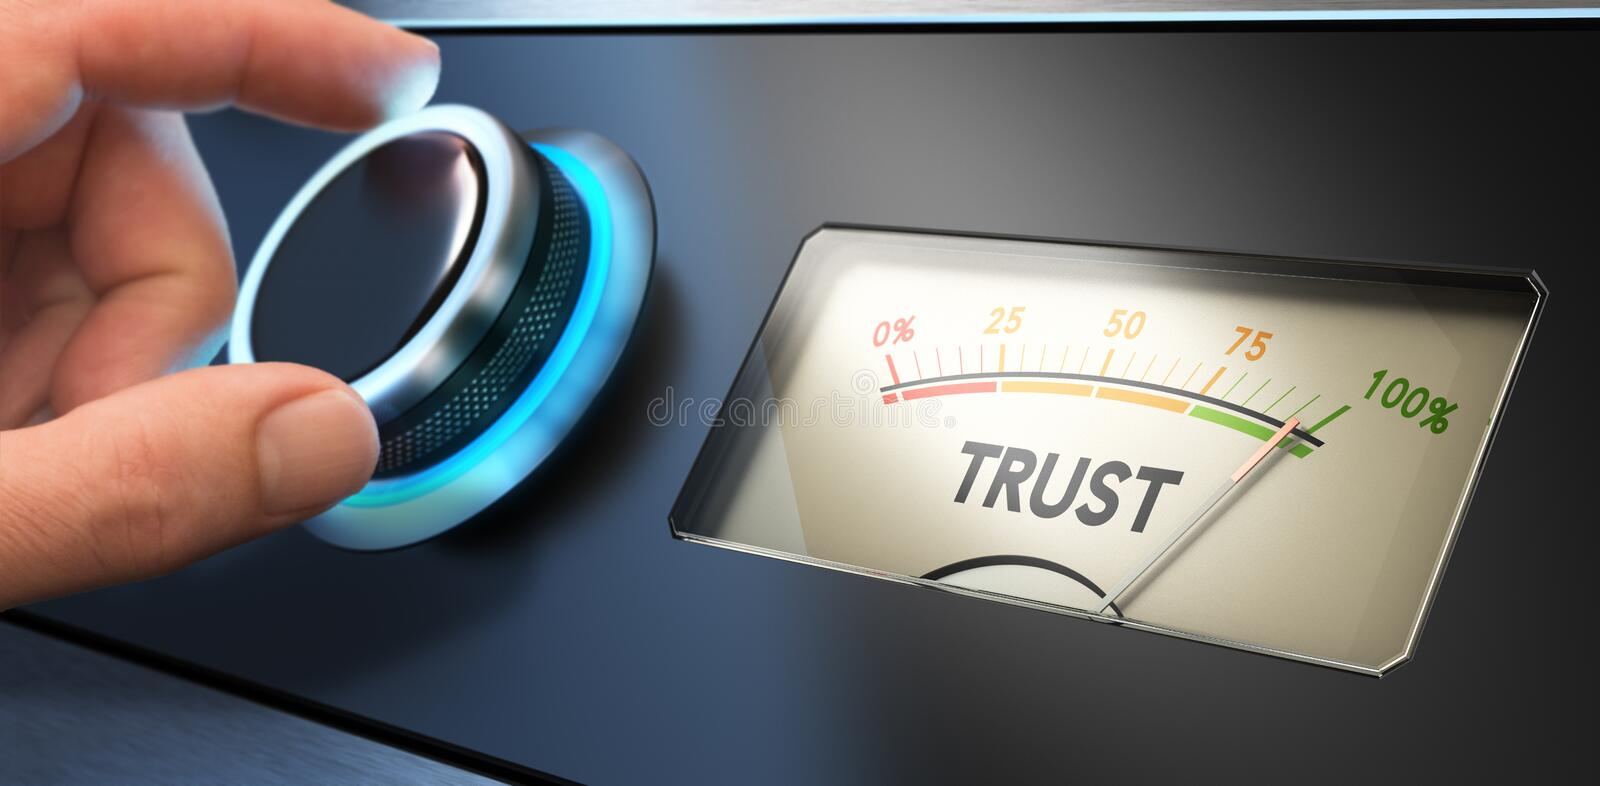 Trust Concept in Business royalty free stock photography